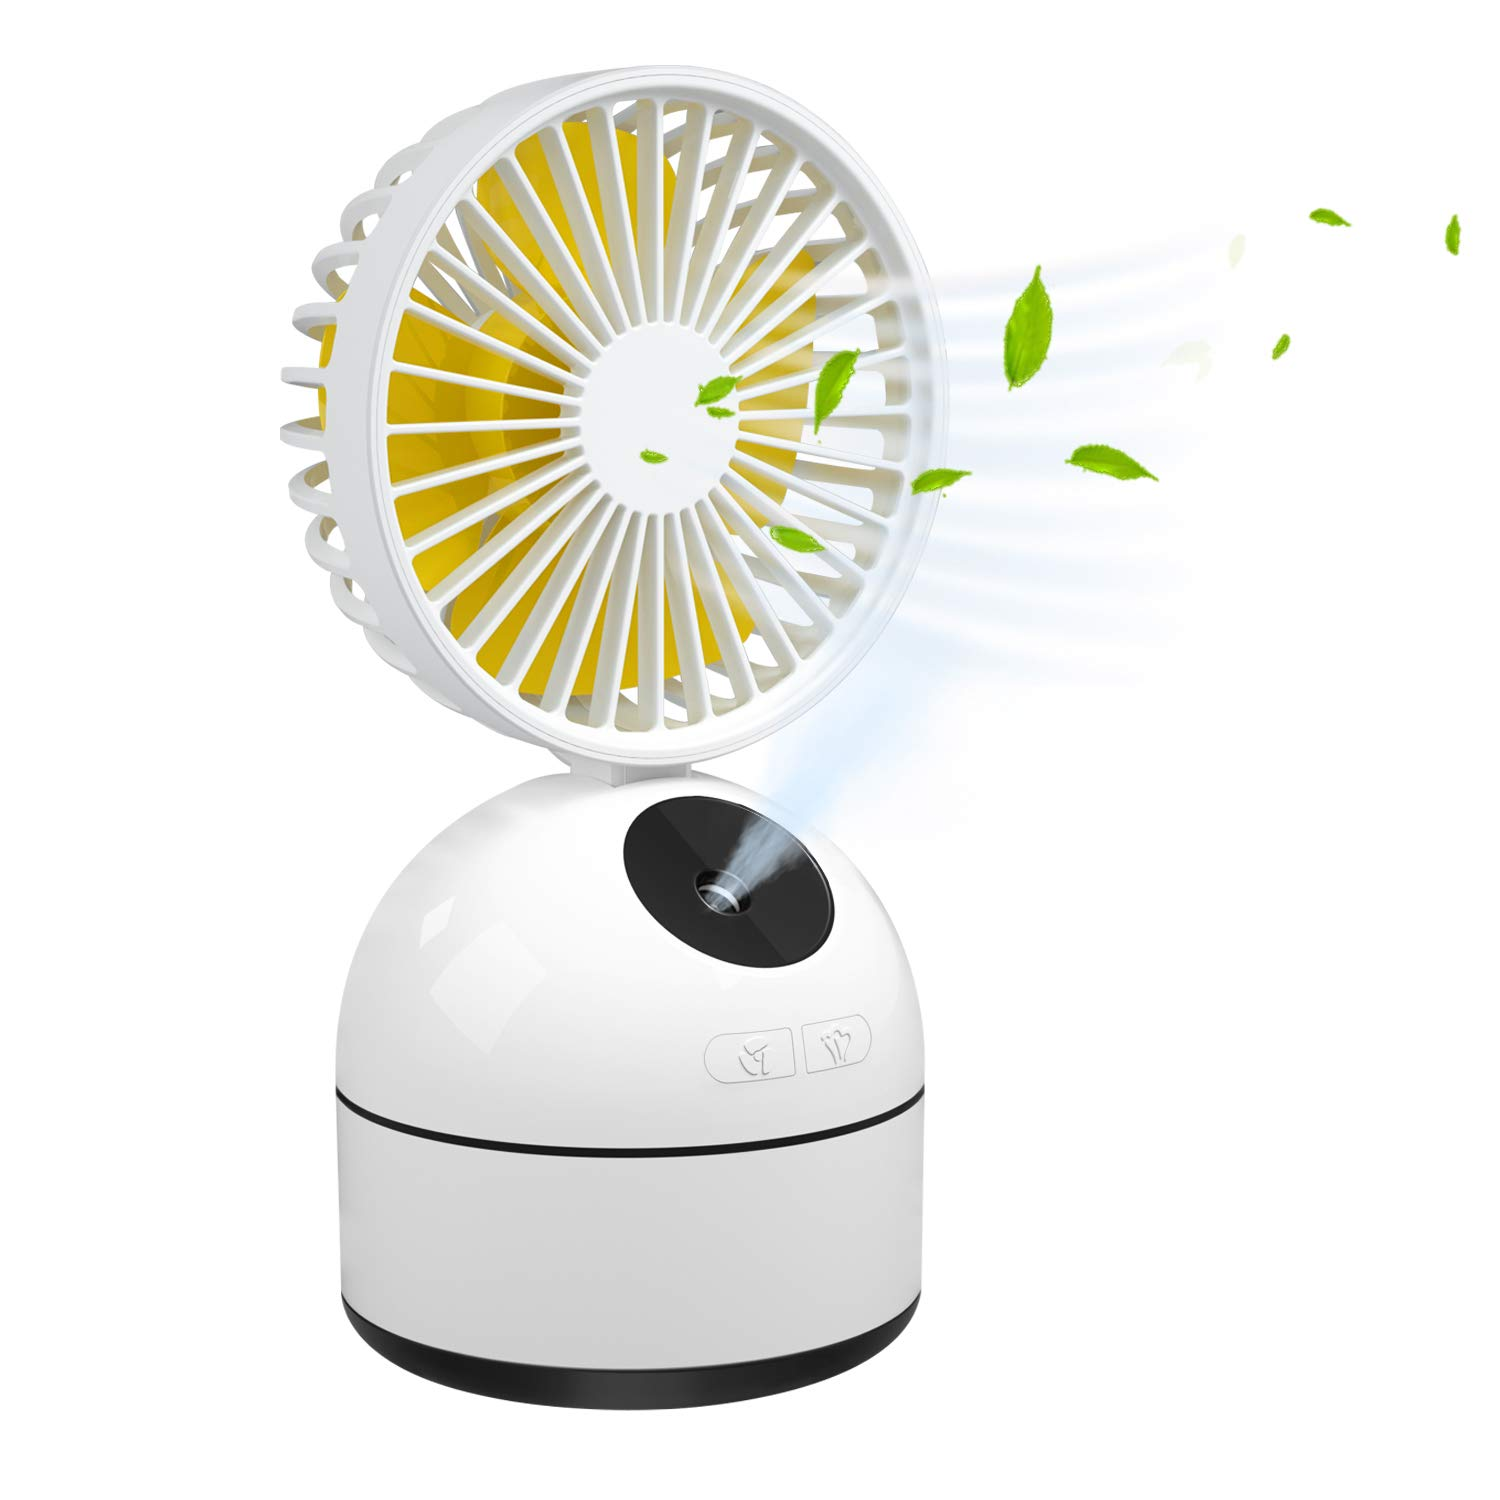 Dillitop Humidifier Misting Fan, Portable Mini Personal Humidification Fan with USB Rechargeable Battery Operated Water Spray Desk Small Humidifier for Home/Office/Camping/Outdoors/Travel